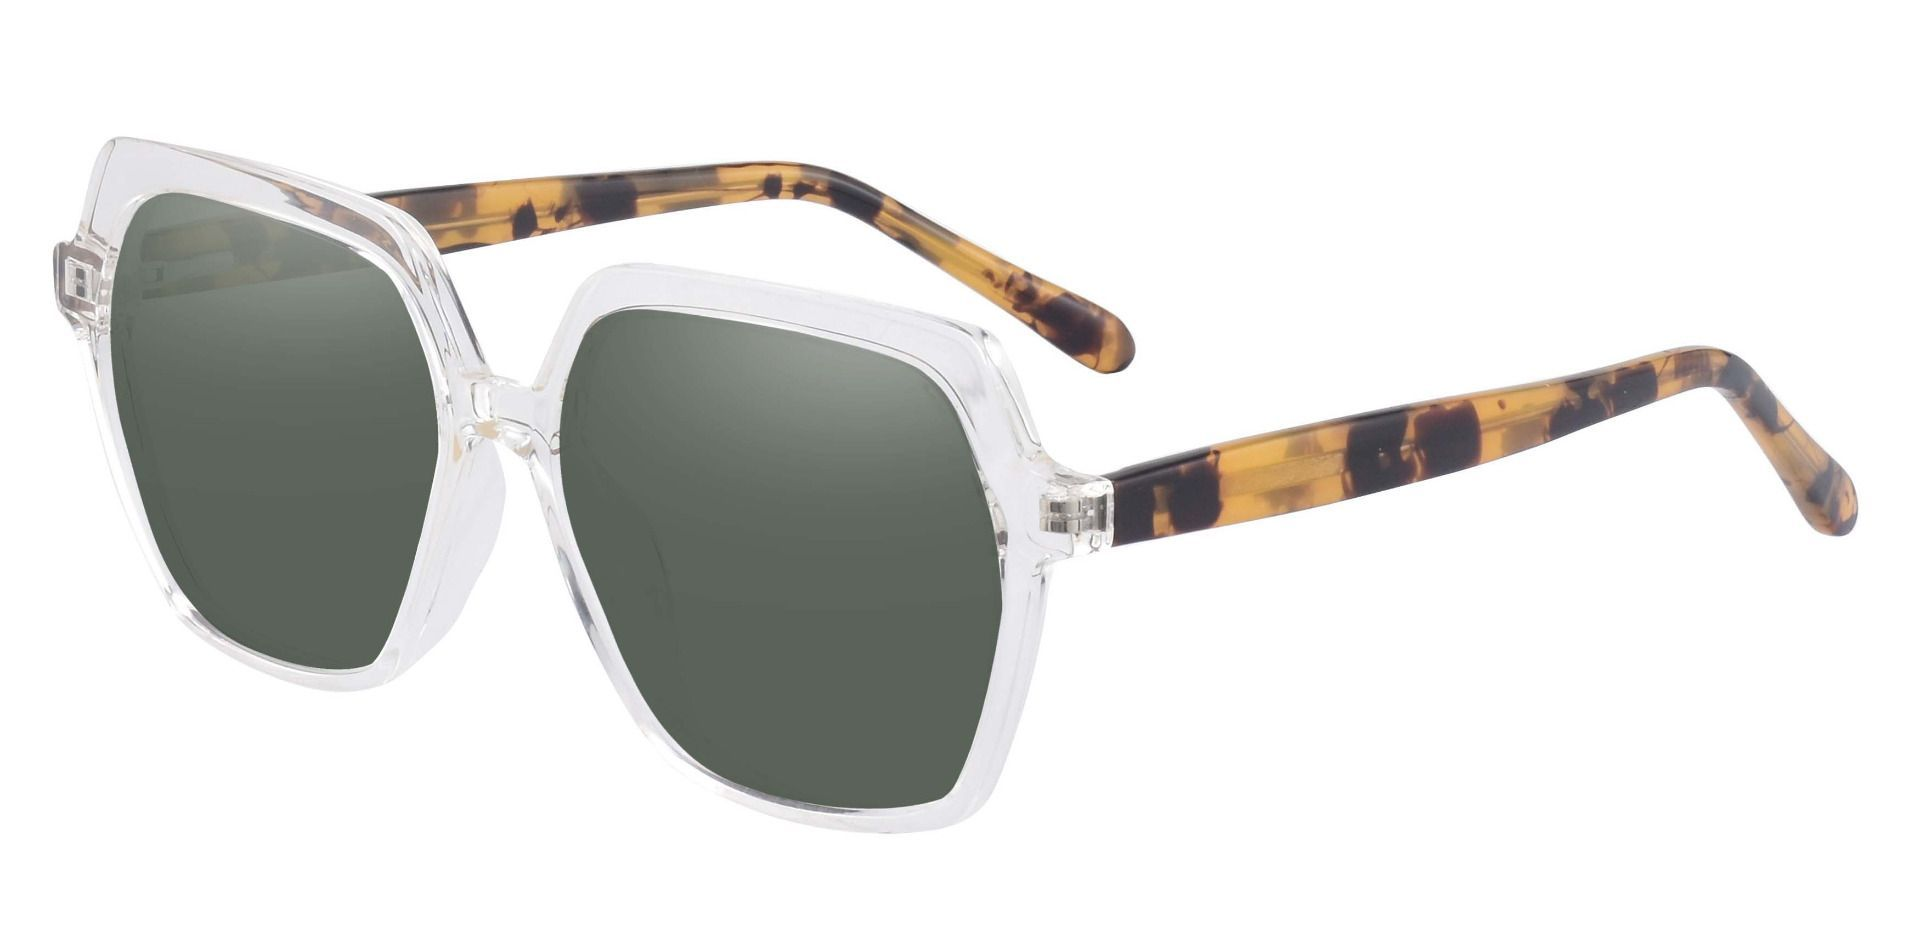 Regent Geometric Non-Rx Sunglasses - Clear Frame With Green Lenses